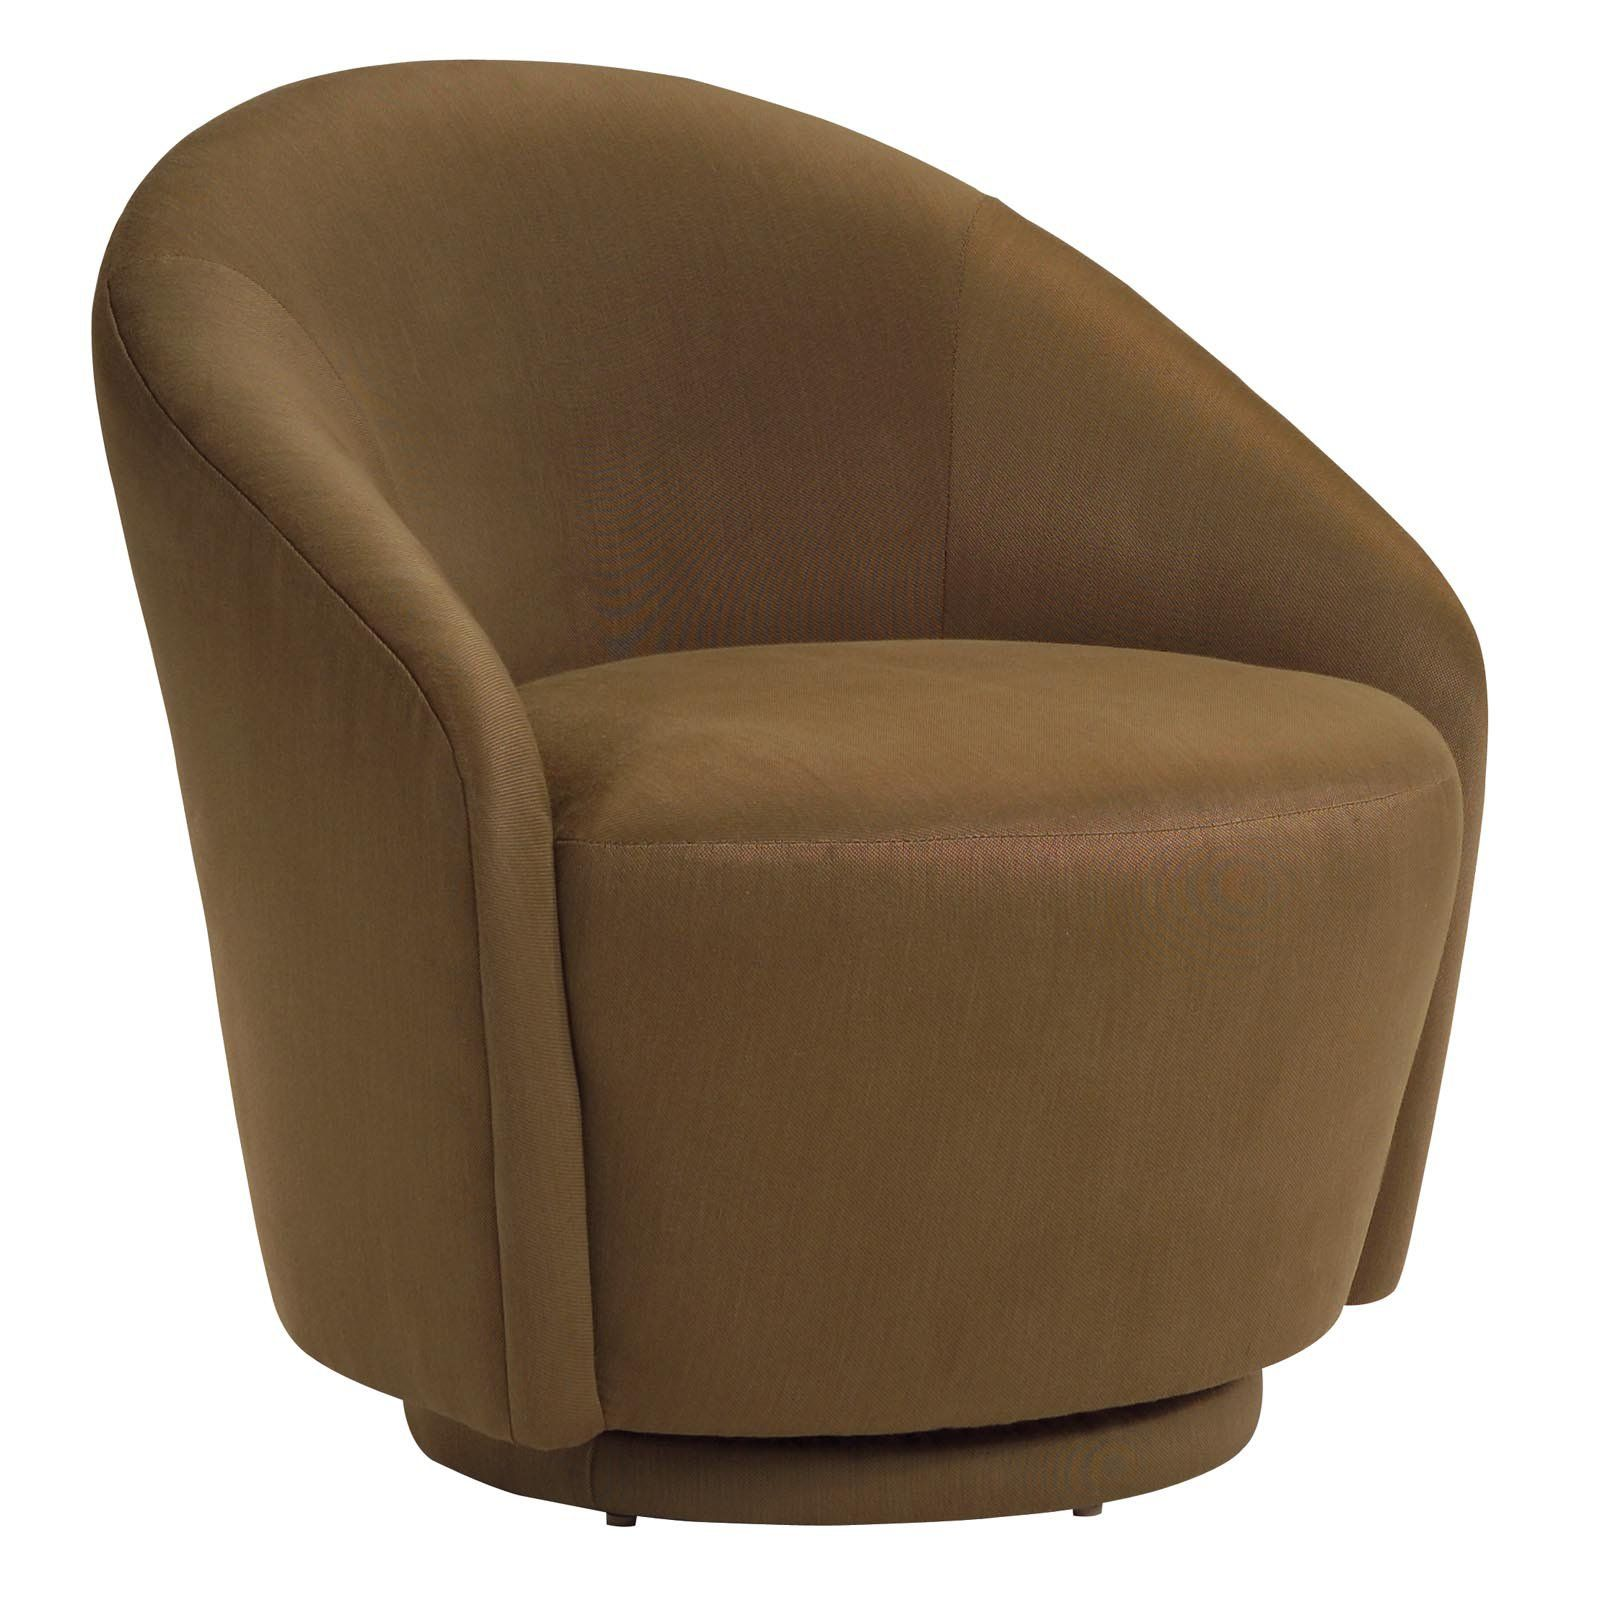 Petite Swivel Accent Chair   Color Brown Dimensions 30W X 33D X 32H In. (